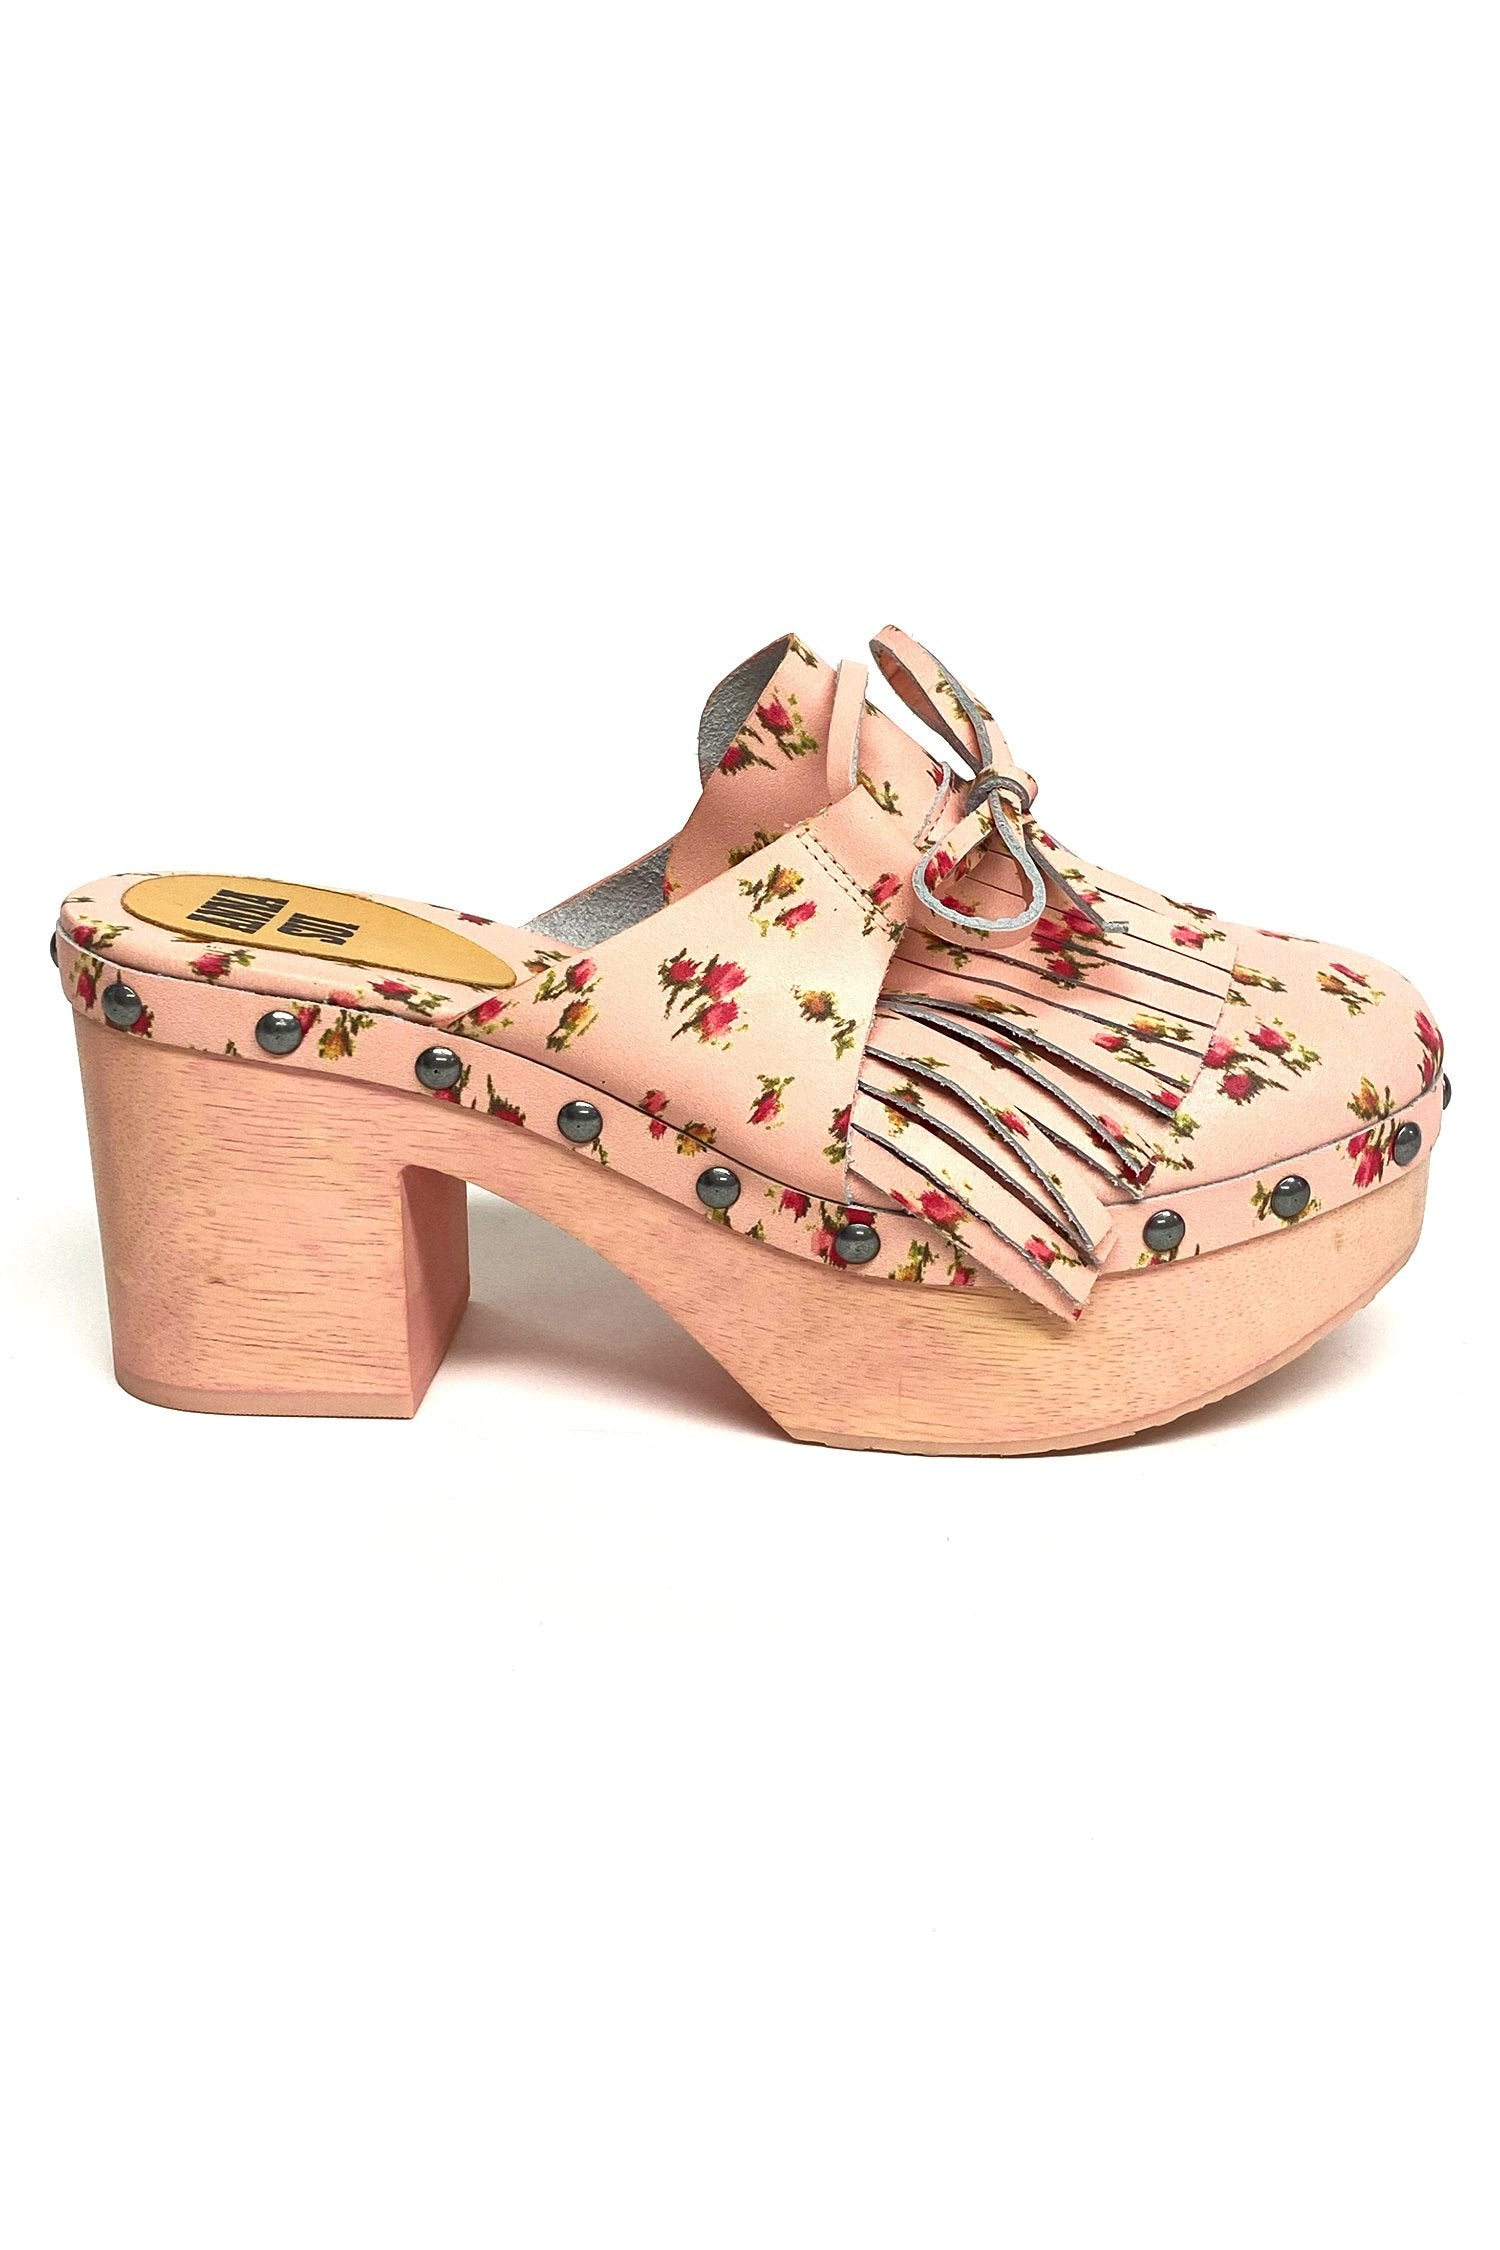 Ashley Clog - Anna Sui